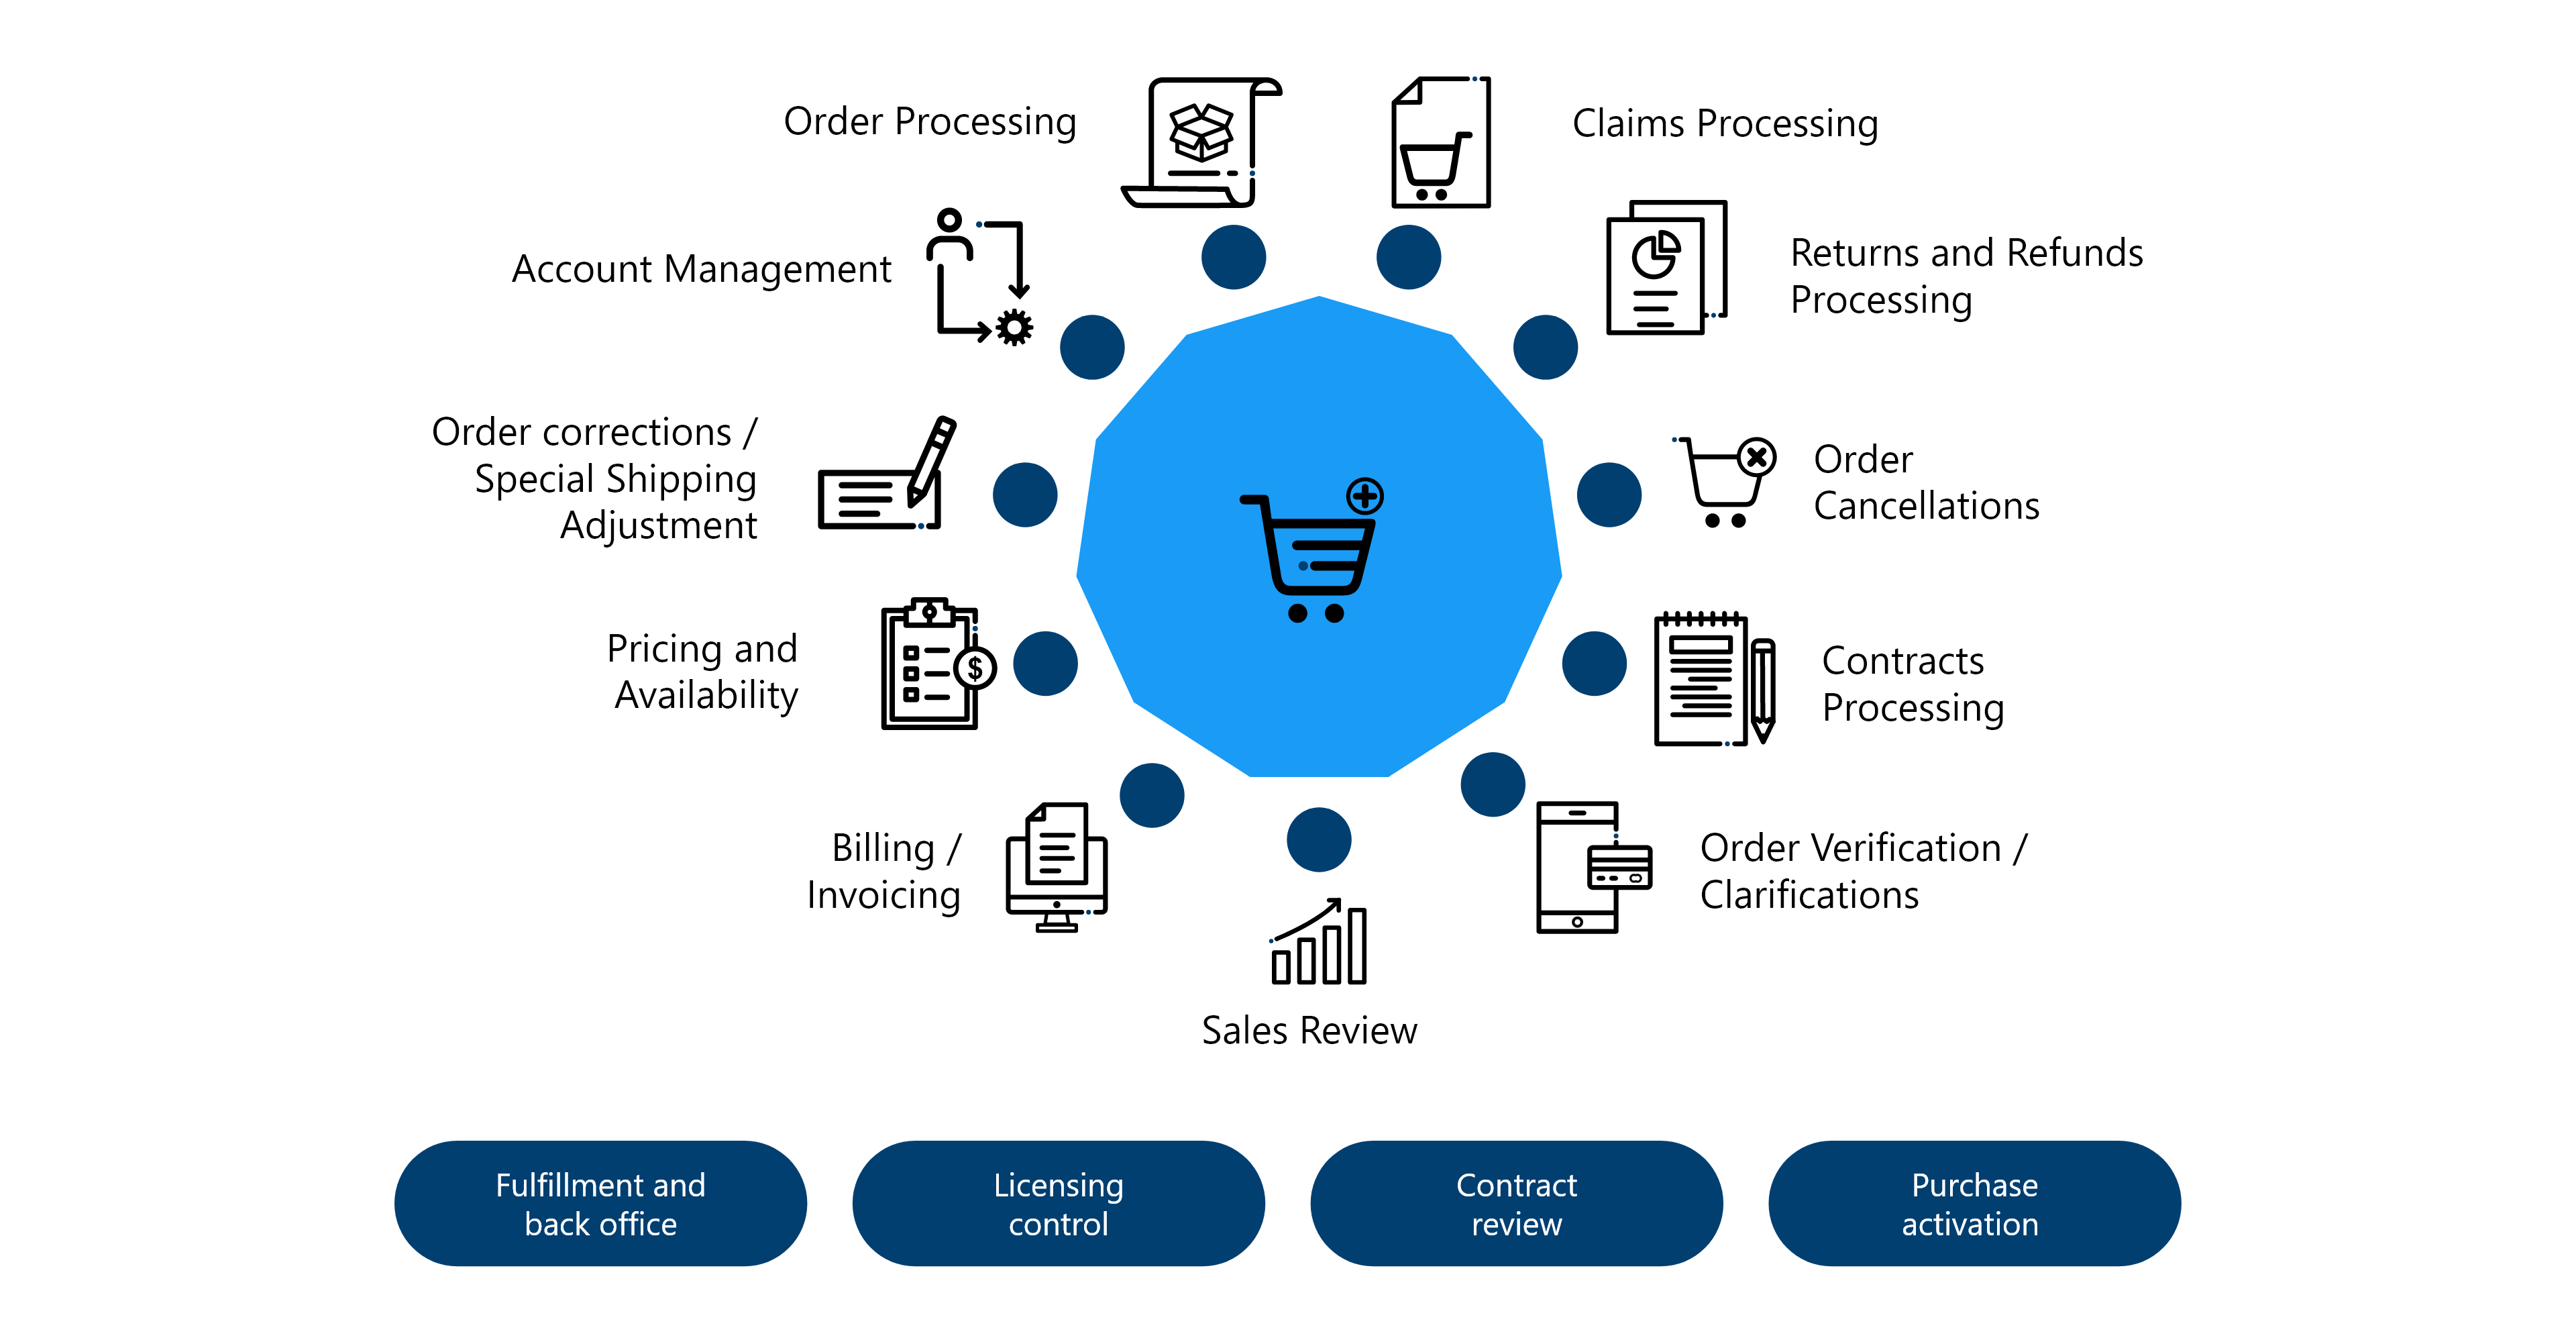 Omni channel support lead generation and retention